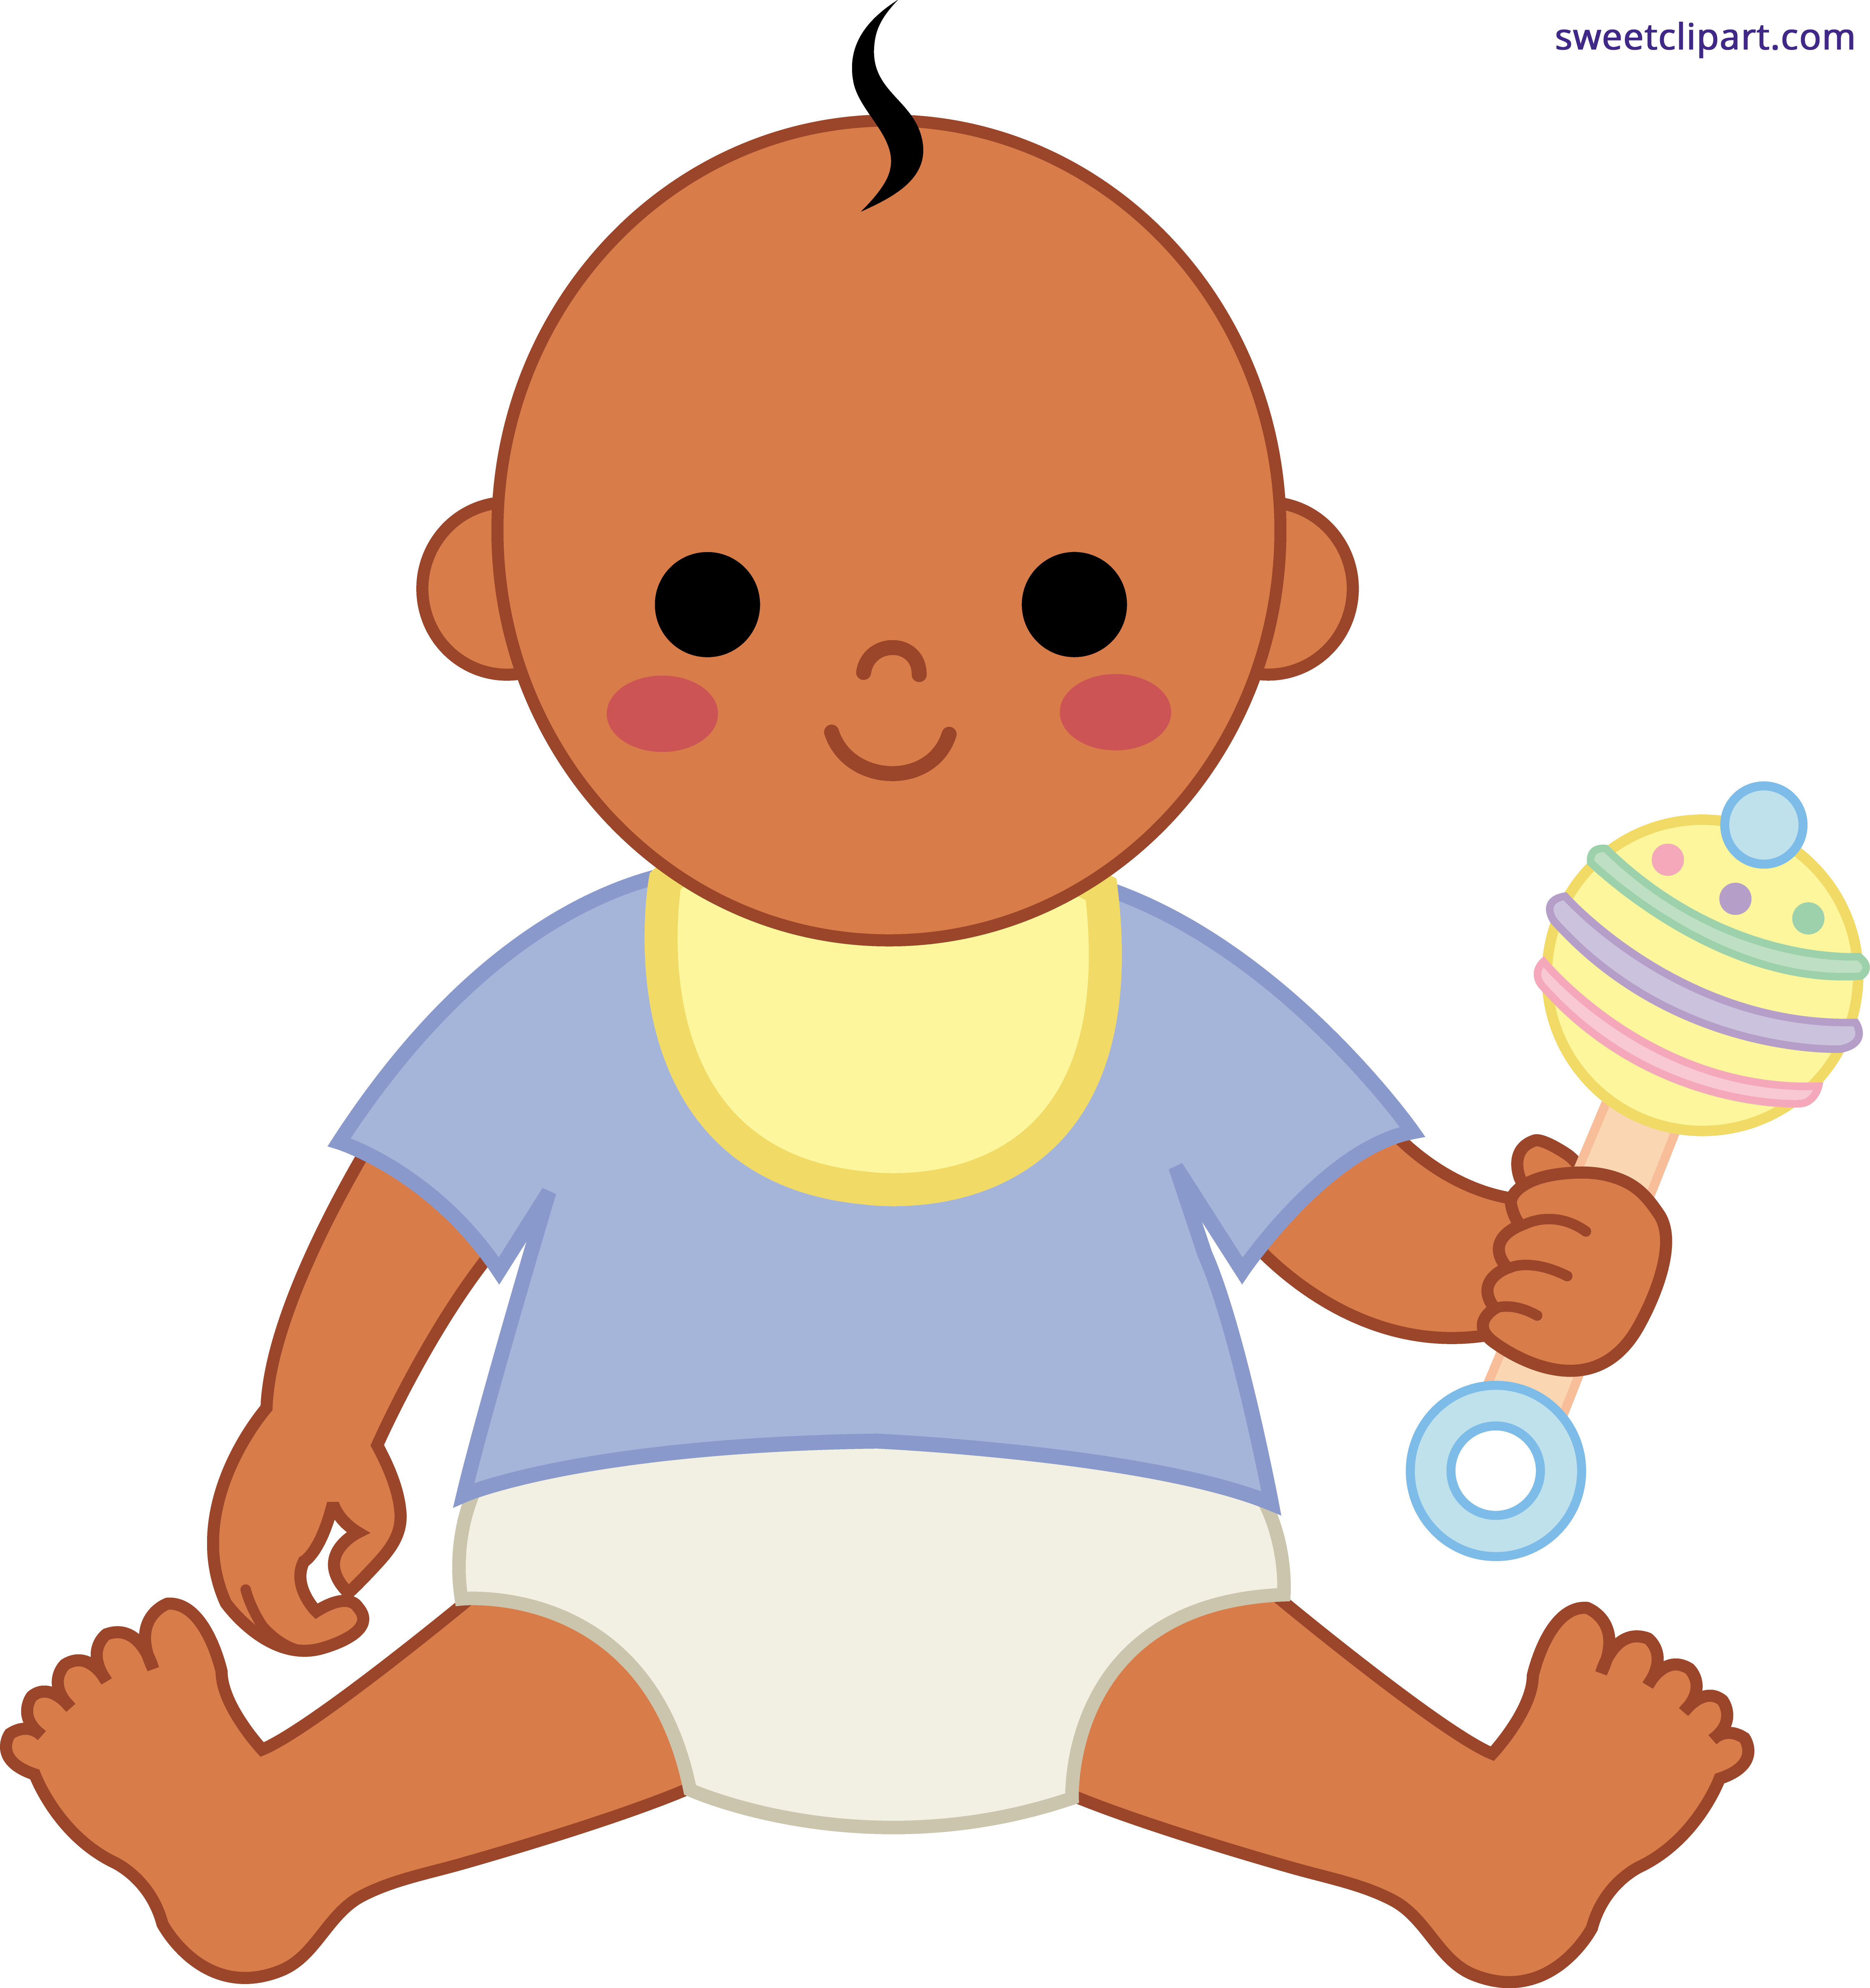 Playing house clipart svg download Baby Boy 2 Clipart - Sweet Clip Art svg download